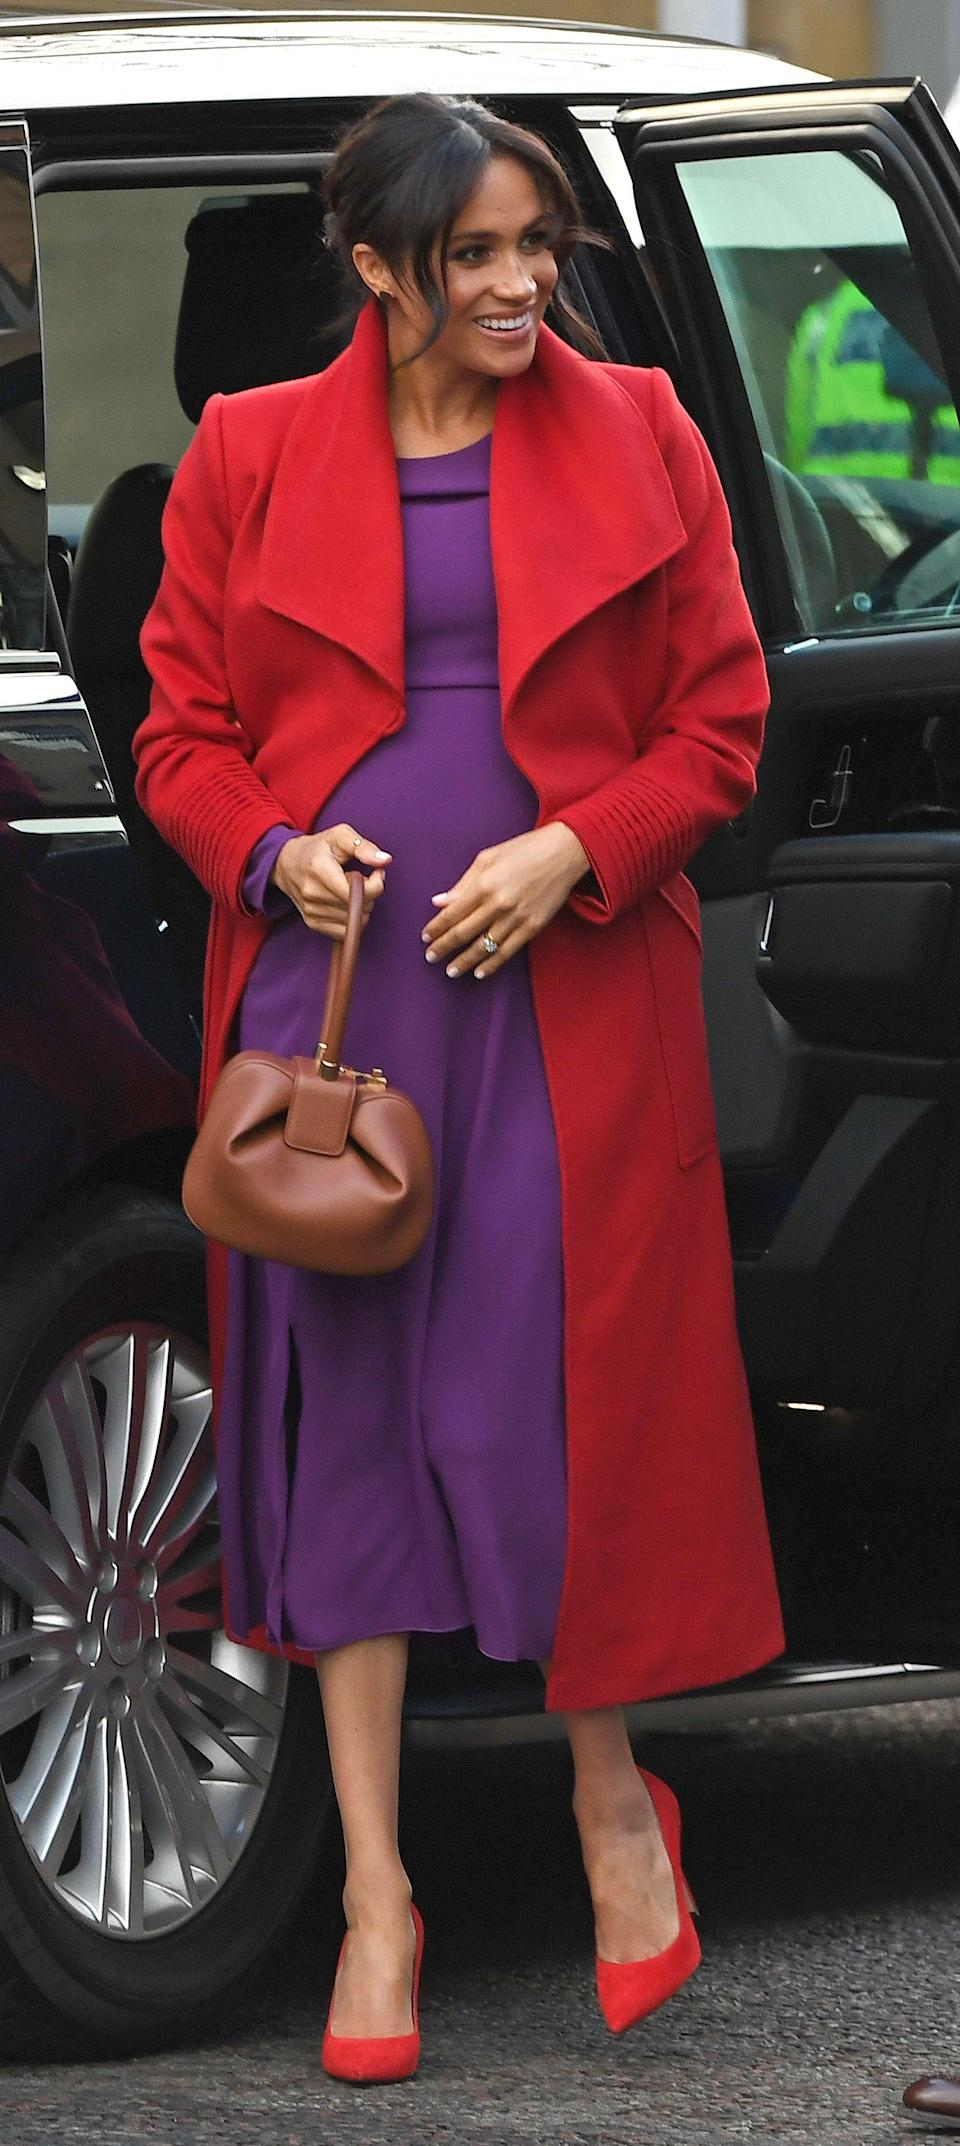 For Harry and Meghan's first joint engagement of 2019, the Duchess of Sussex broke her navy streak in a colour-blocking ensemble by her favourite Canadian brands. The royal dressed her bump in a traffic light red Sentaler coat teamed with a purple midi dress by Aritzia's Babaton. Clashing Stuart Weitzman heels finished the outfit. [Photo: Getty]